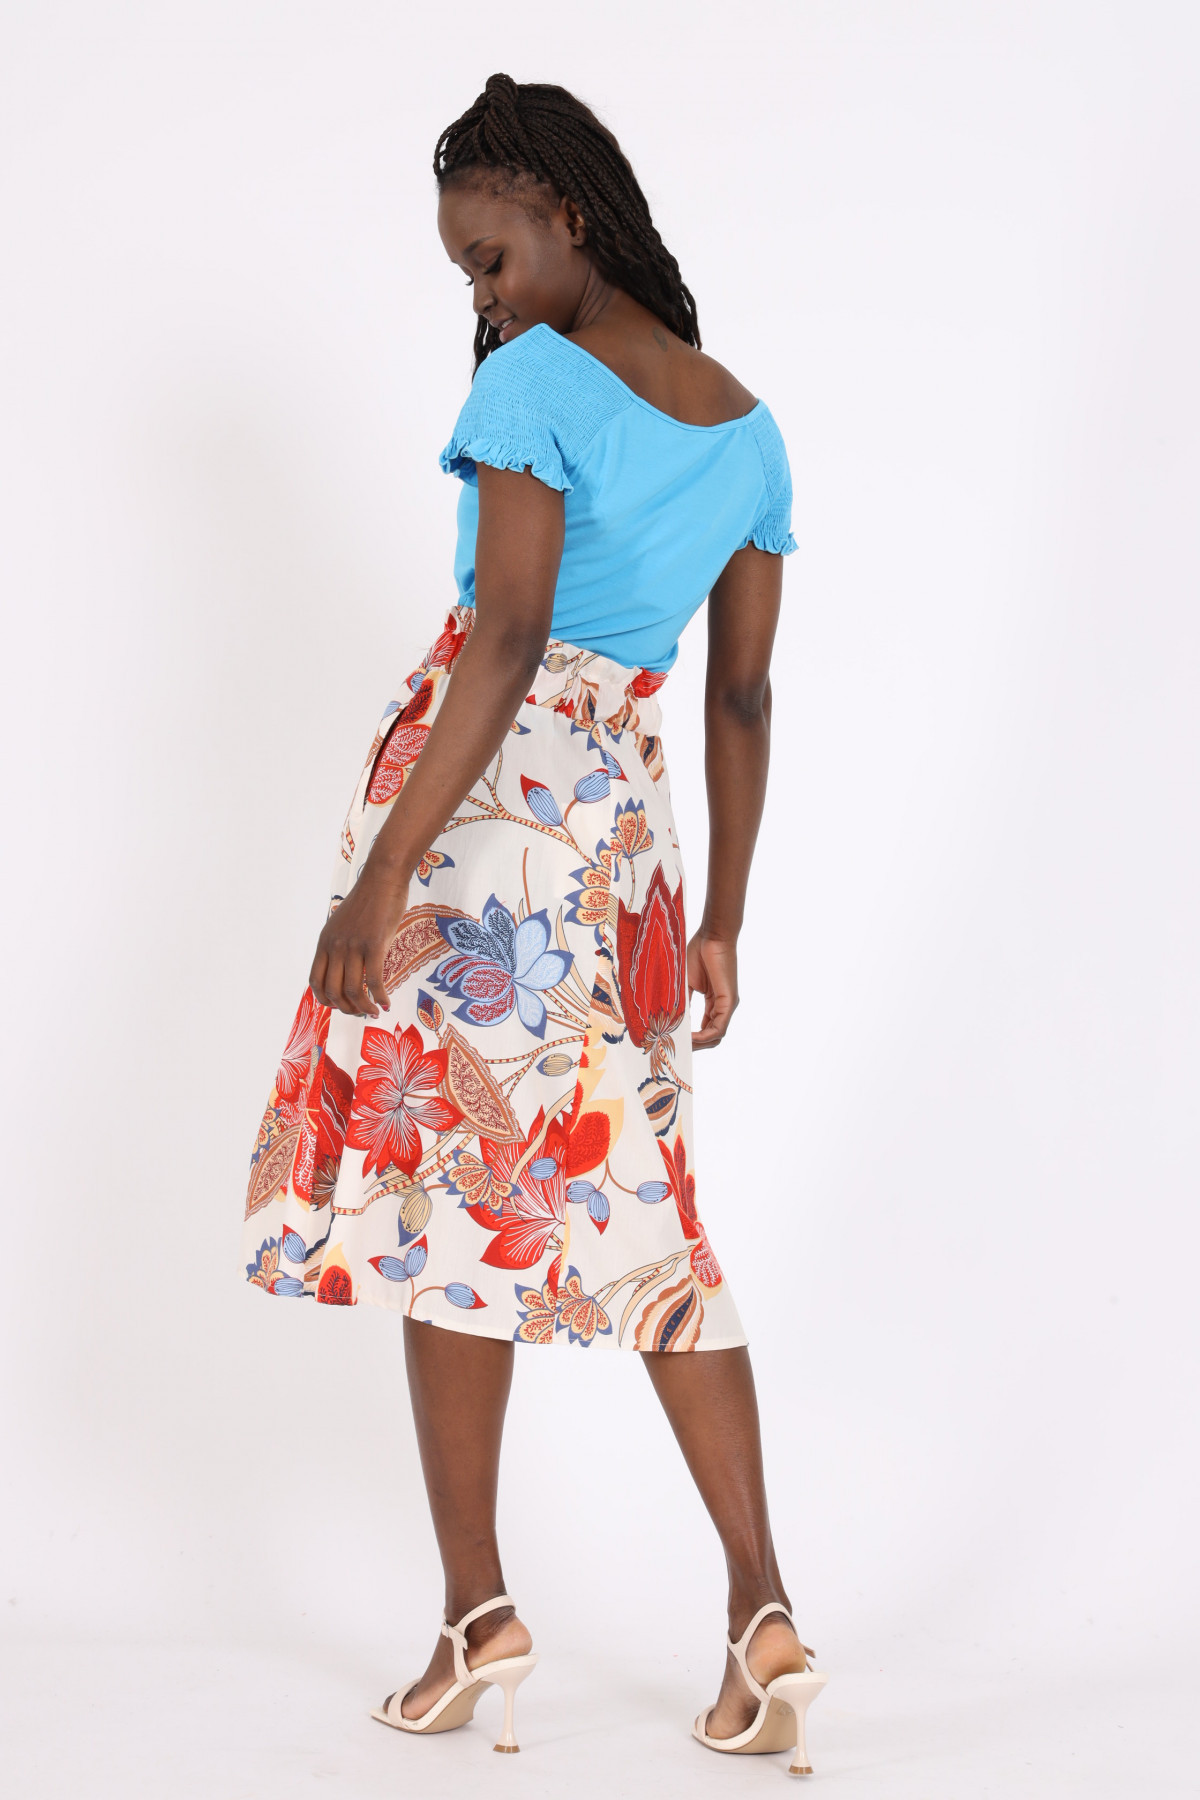 Floral Fantasy Print Candy Skirt